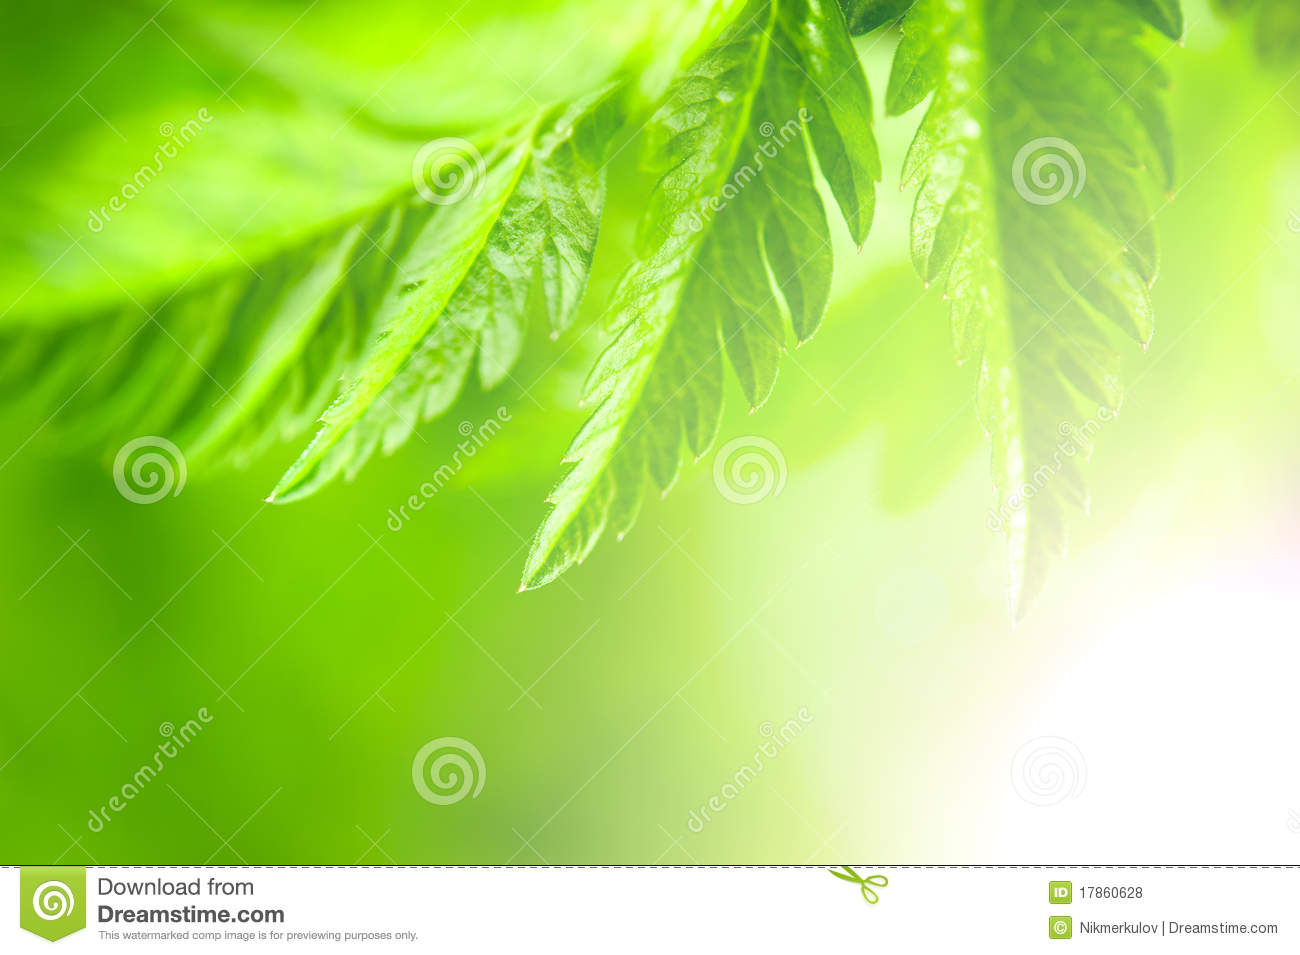 Nature Green Background Royalty Free Stock Photos - Image: 17860628